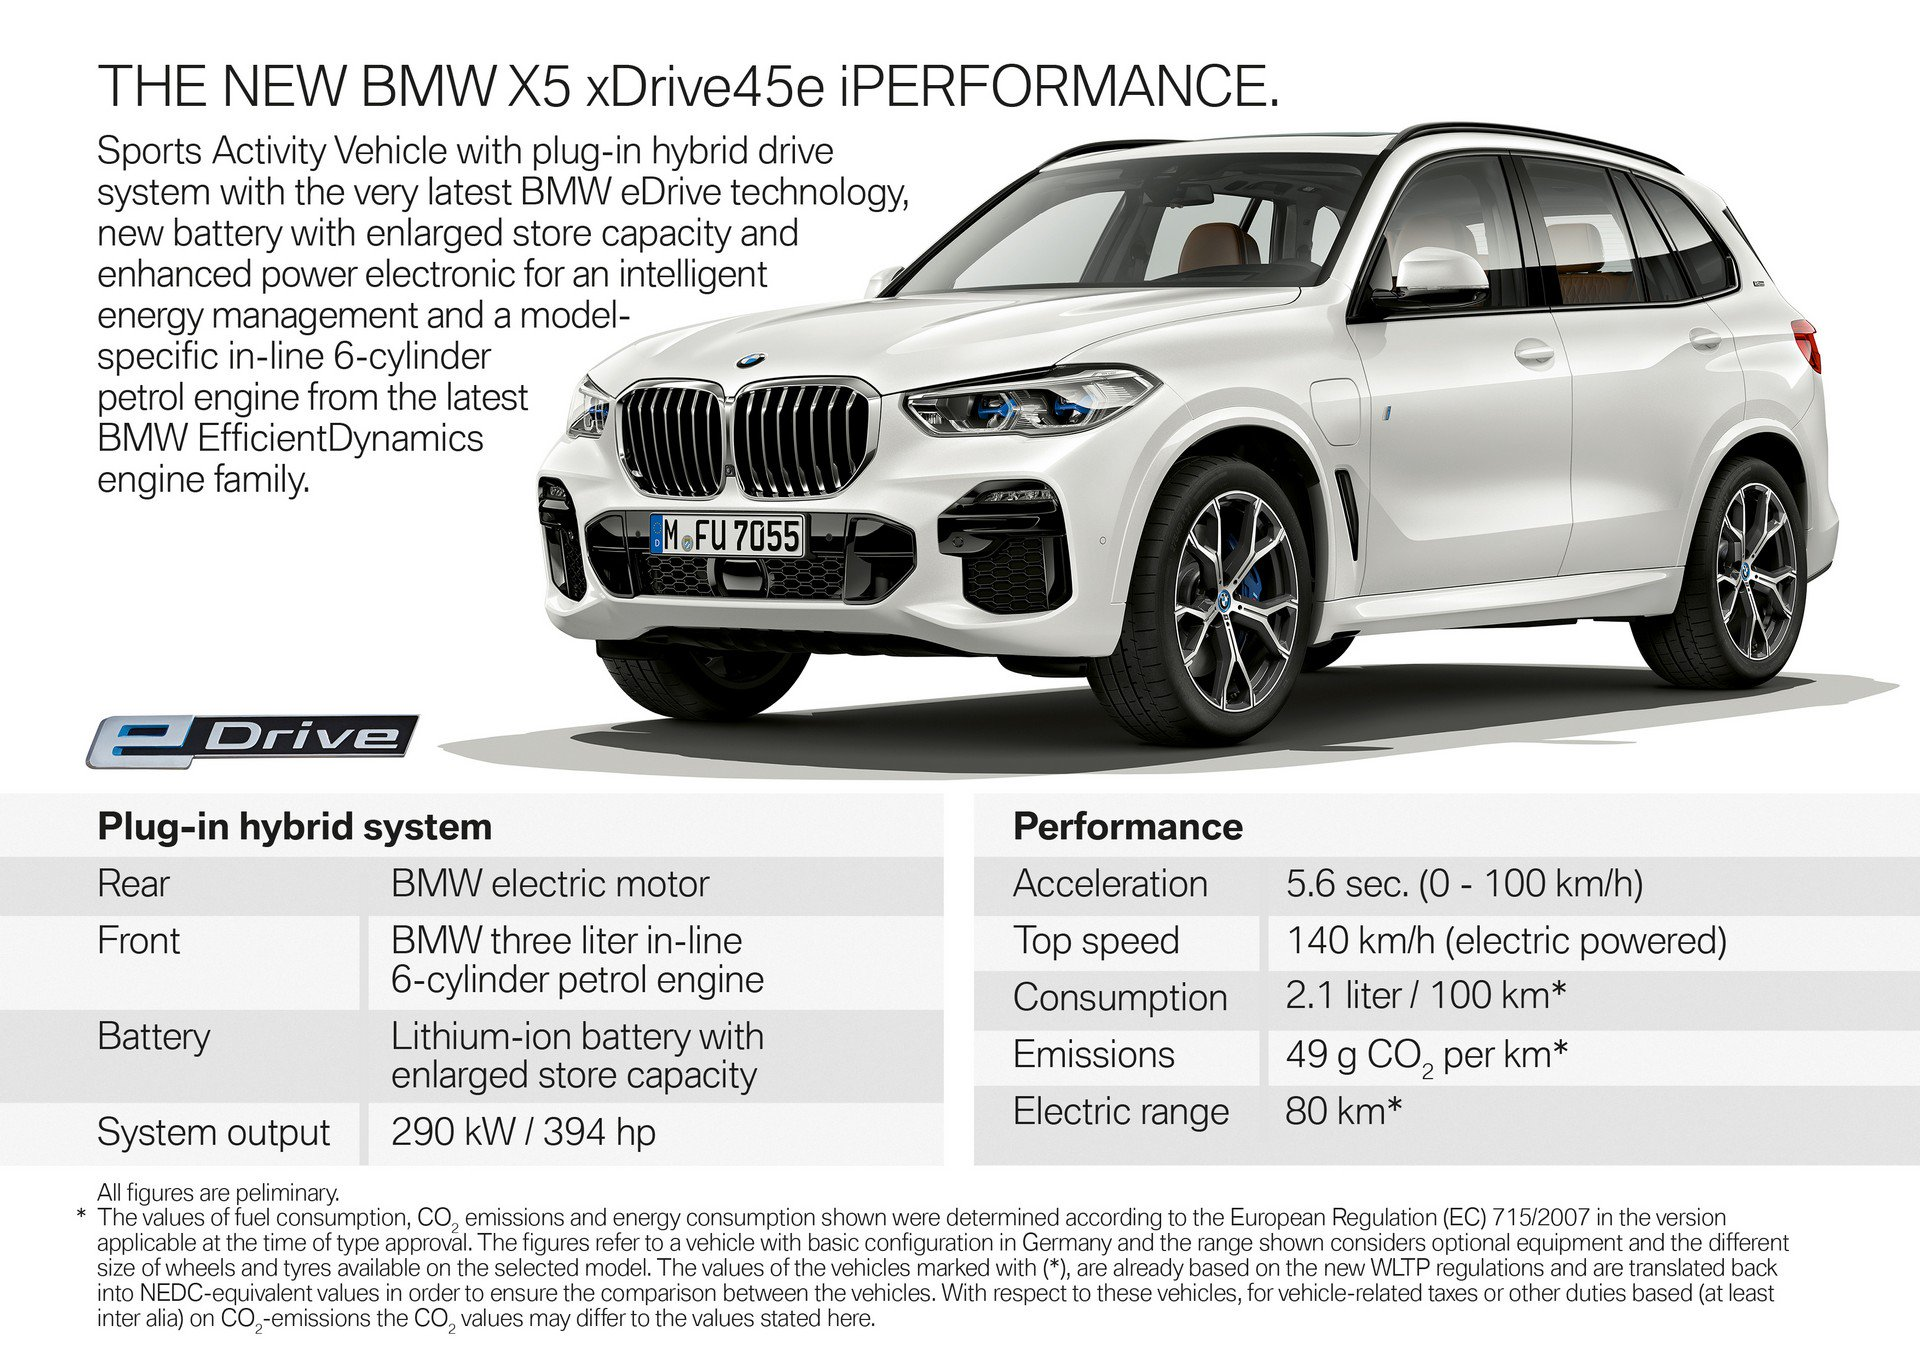 bmw-x5-xdrive45e-iperformance-12.jpg